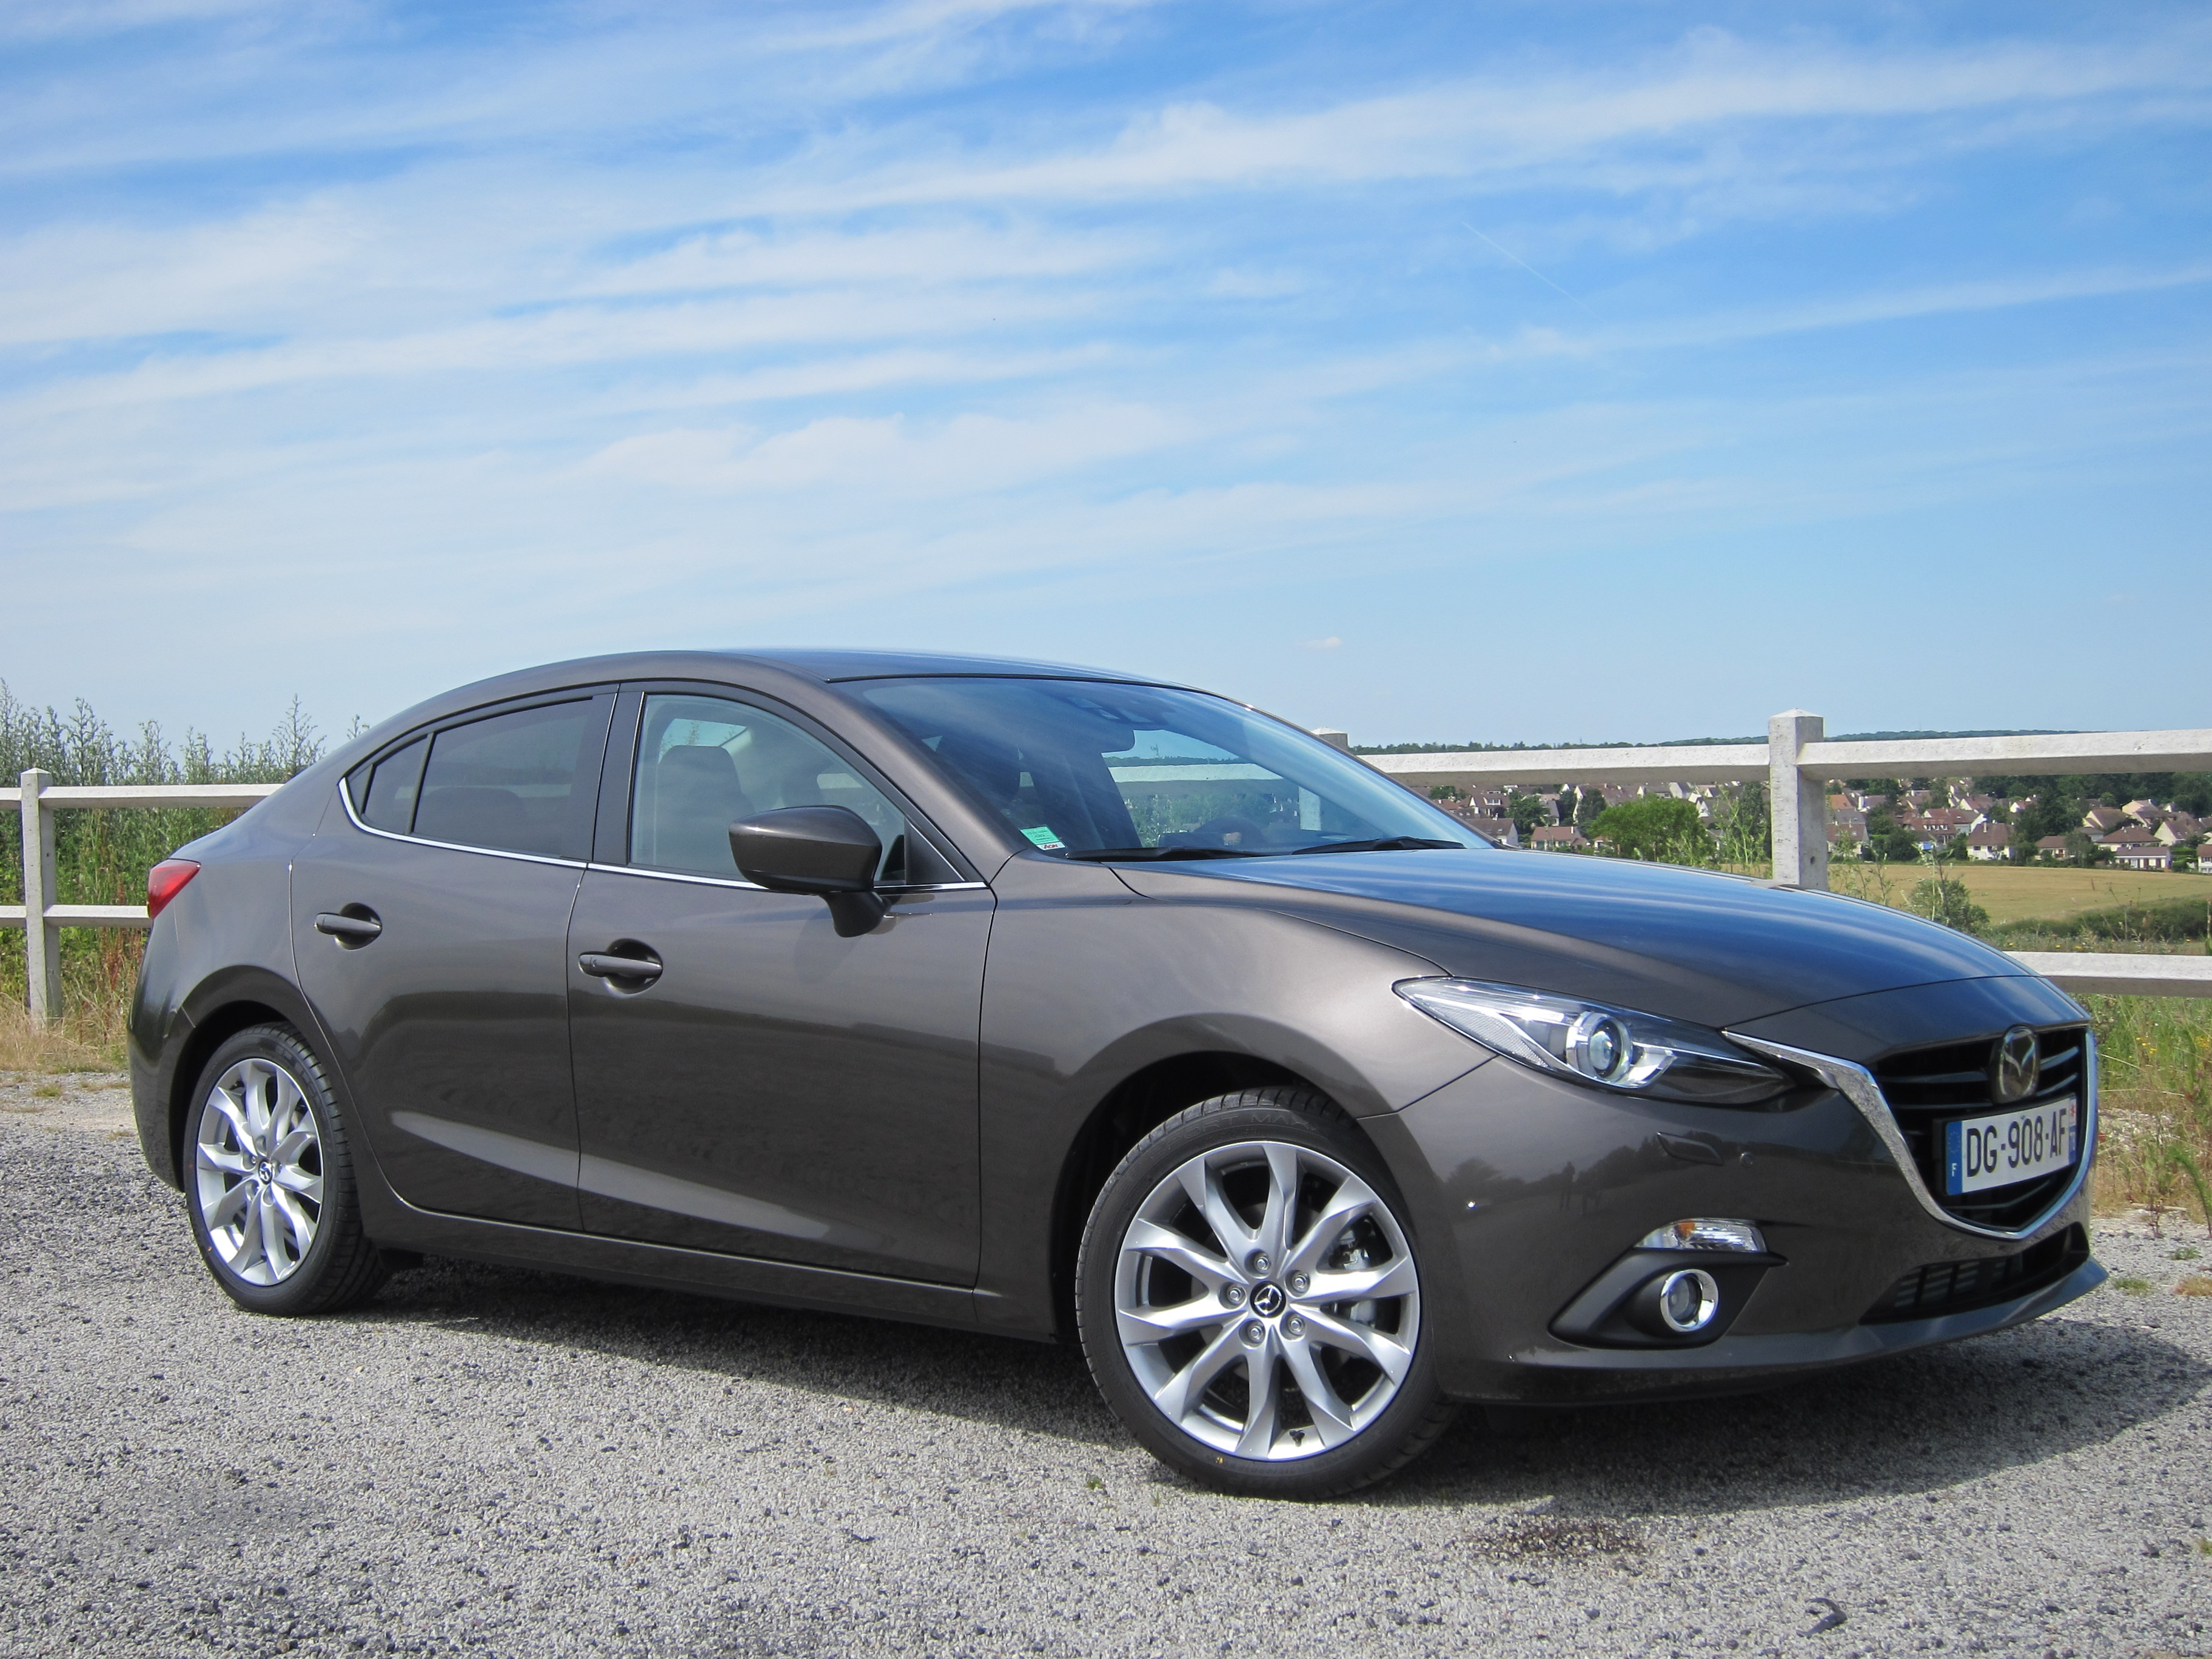 essais mazda 3 essai vid o mazda 3 2017 profil bas essai mazda cx 3 essai mazda 3 mps le blog. Black Bedroom Furniture Sets. Home Design Ideas